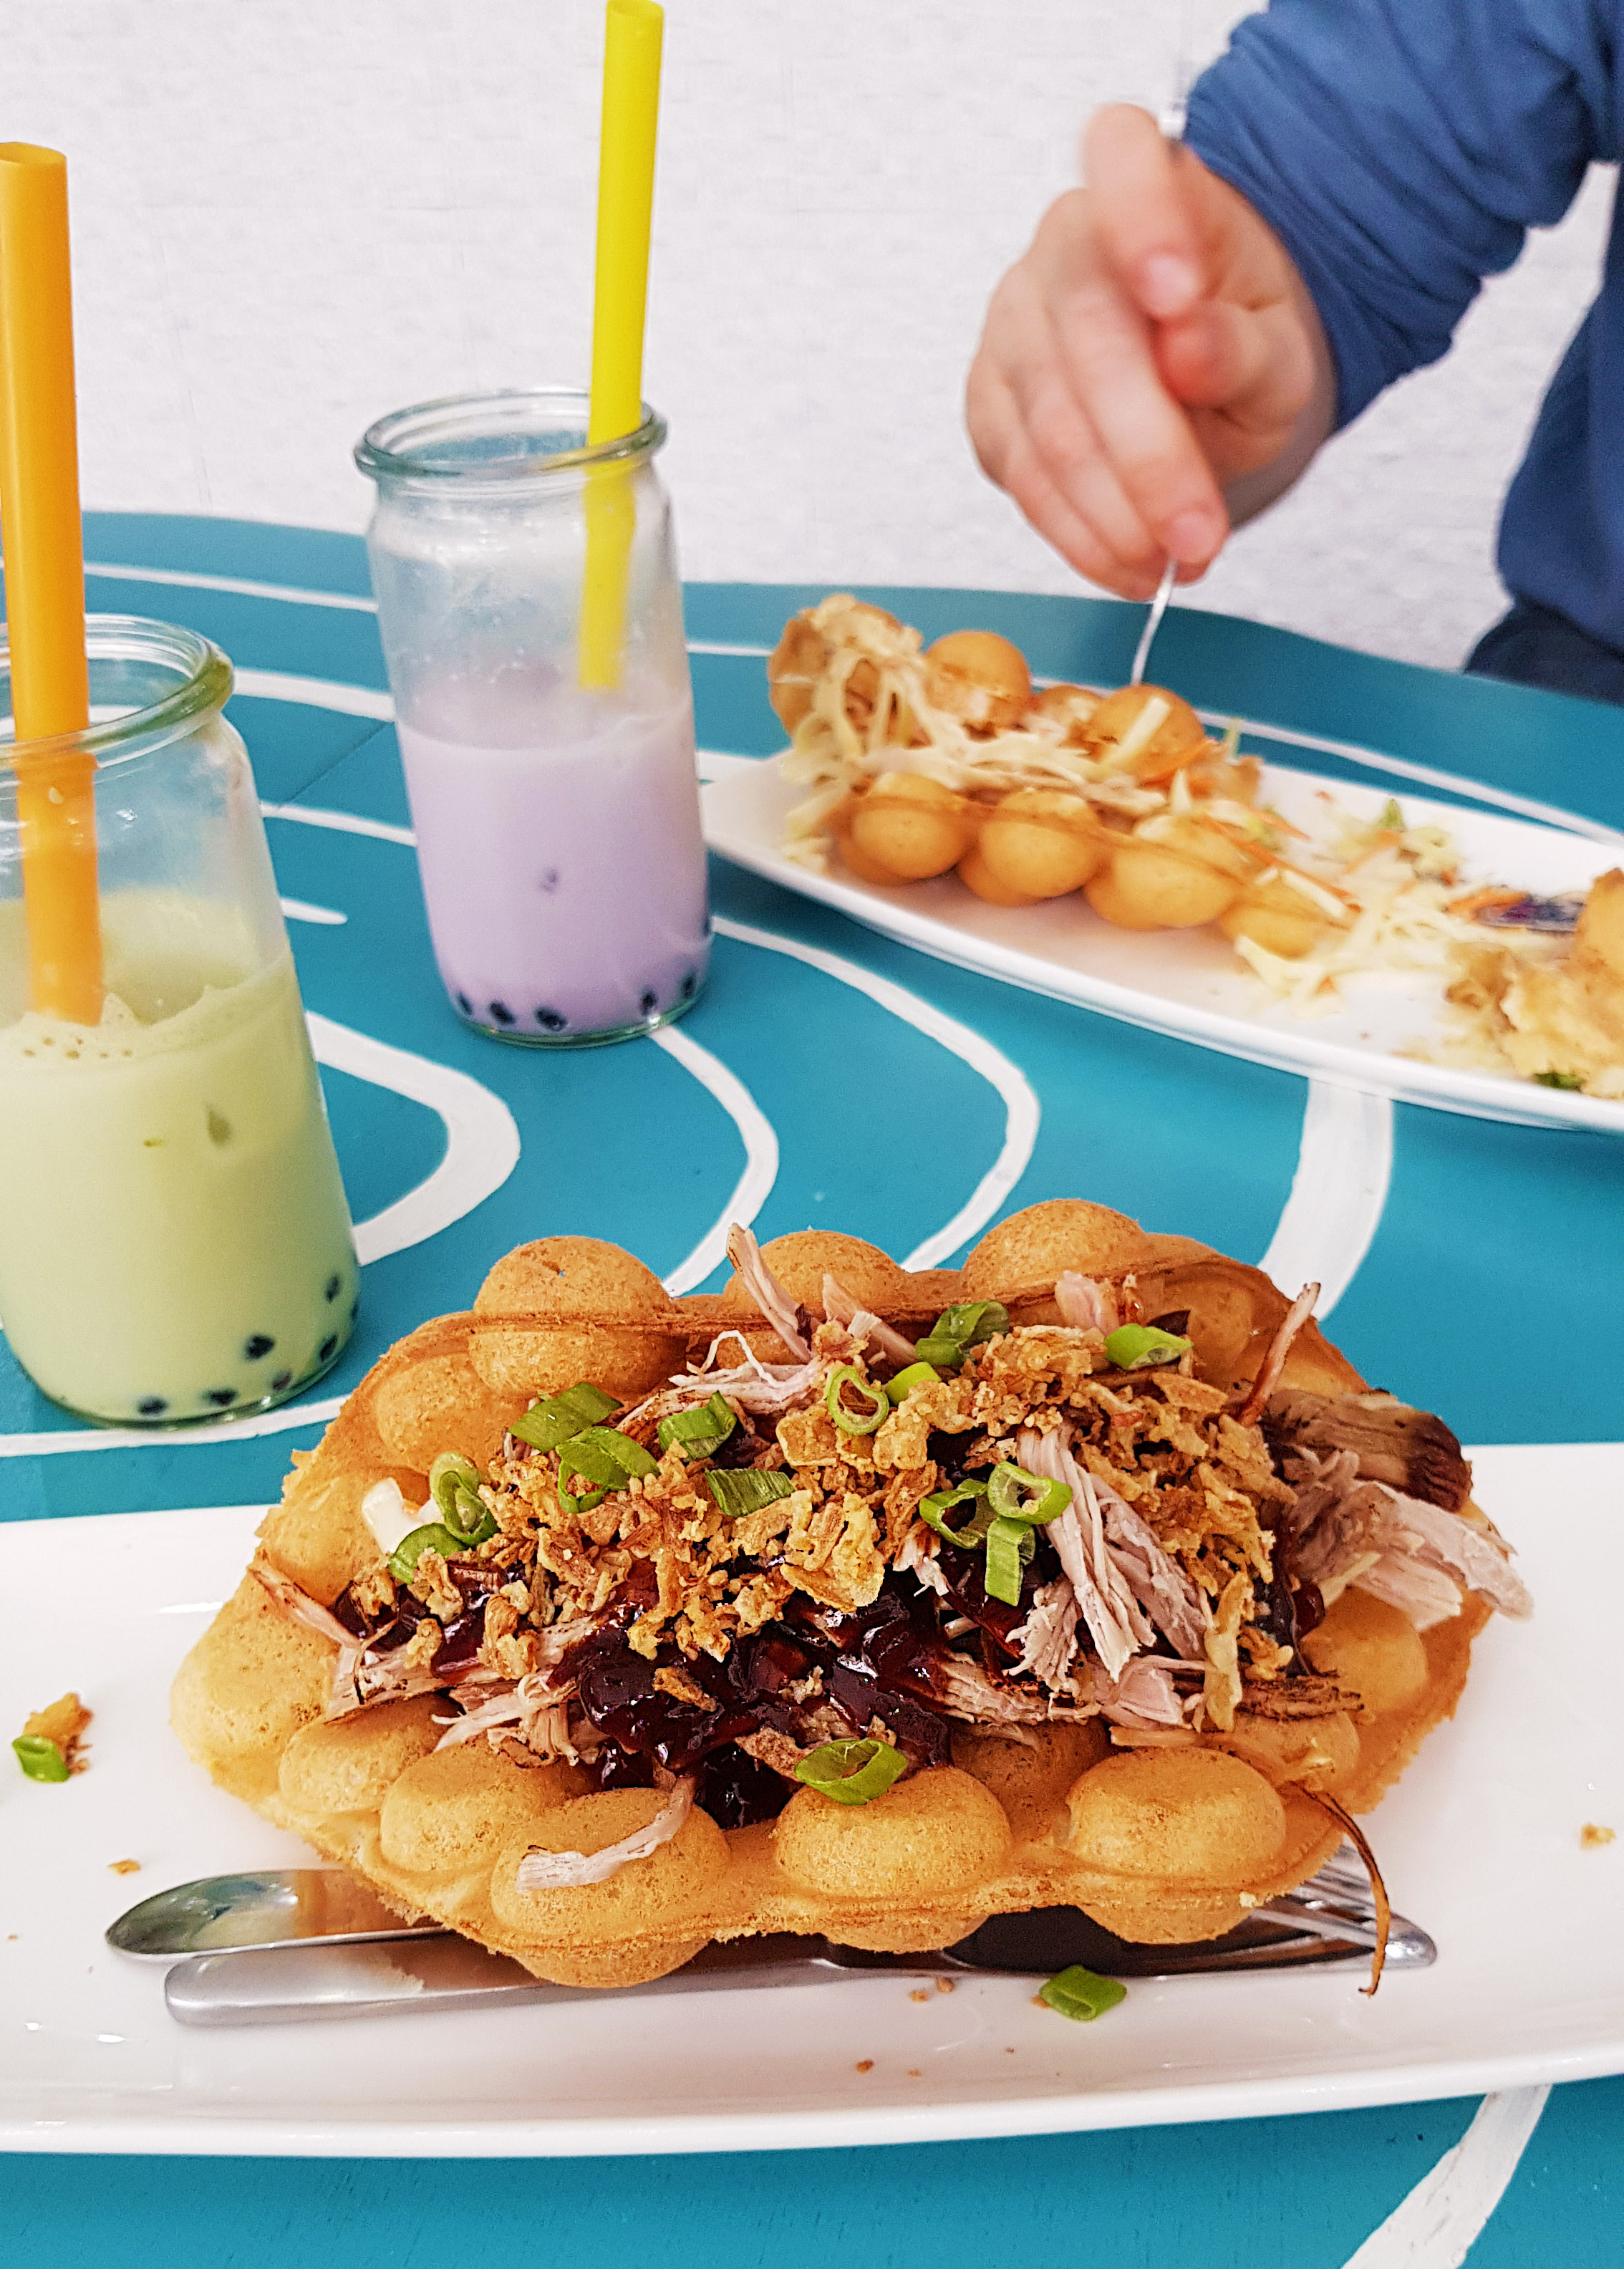 Foo Concepts Rotterdam Restaurant Netherlands pulled pork egg puff egg waffle with bubble tea latte places to eat